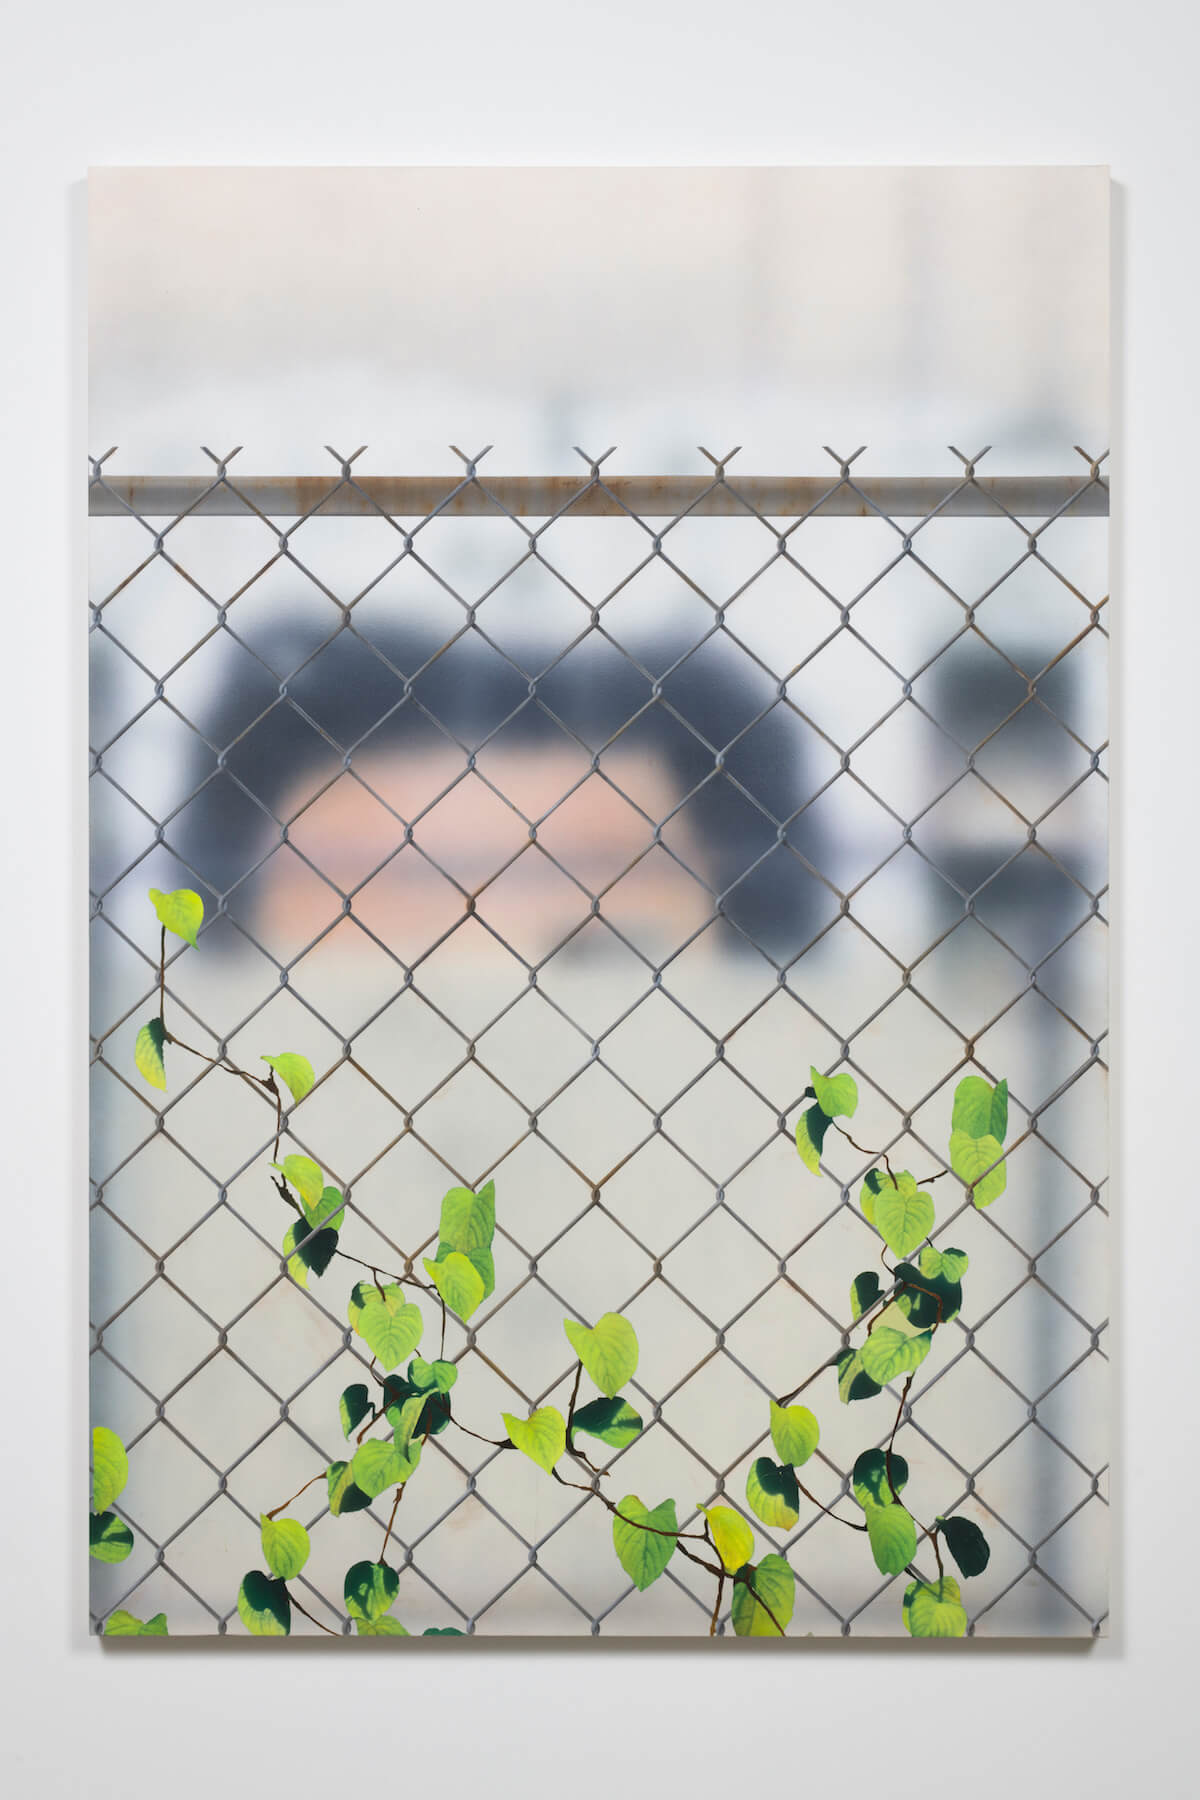 Gomez, Mural with Chain Link and Ivy, 2017 (SG 17.026) A